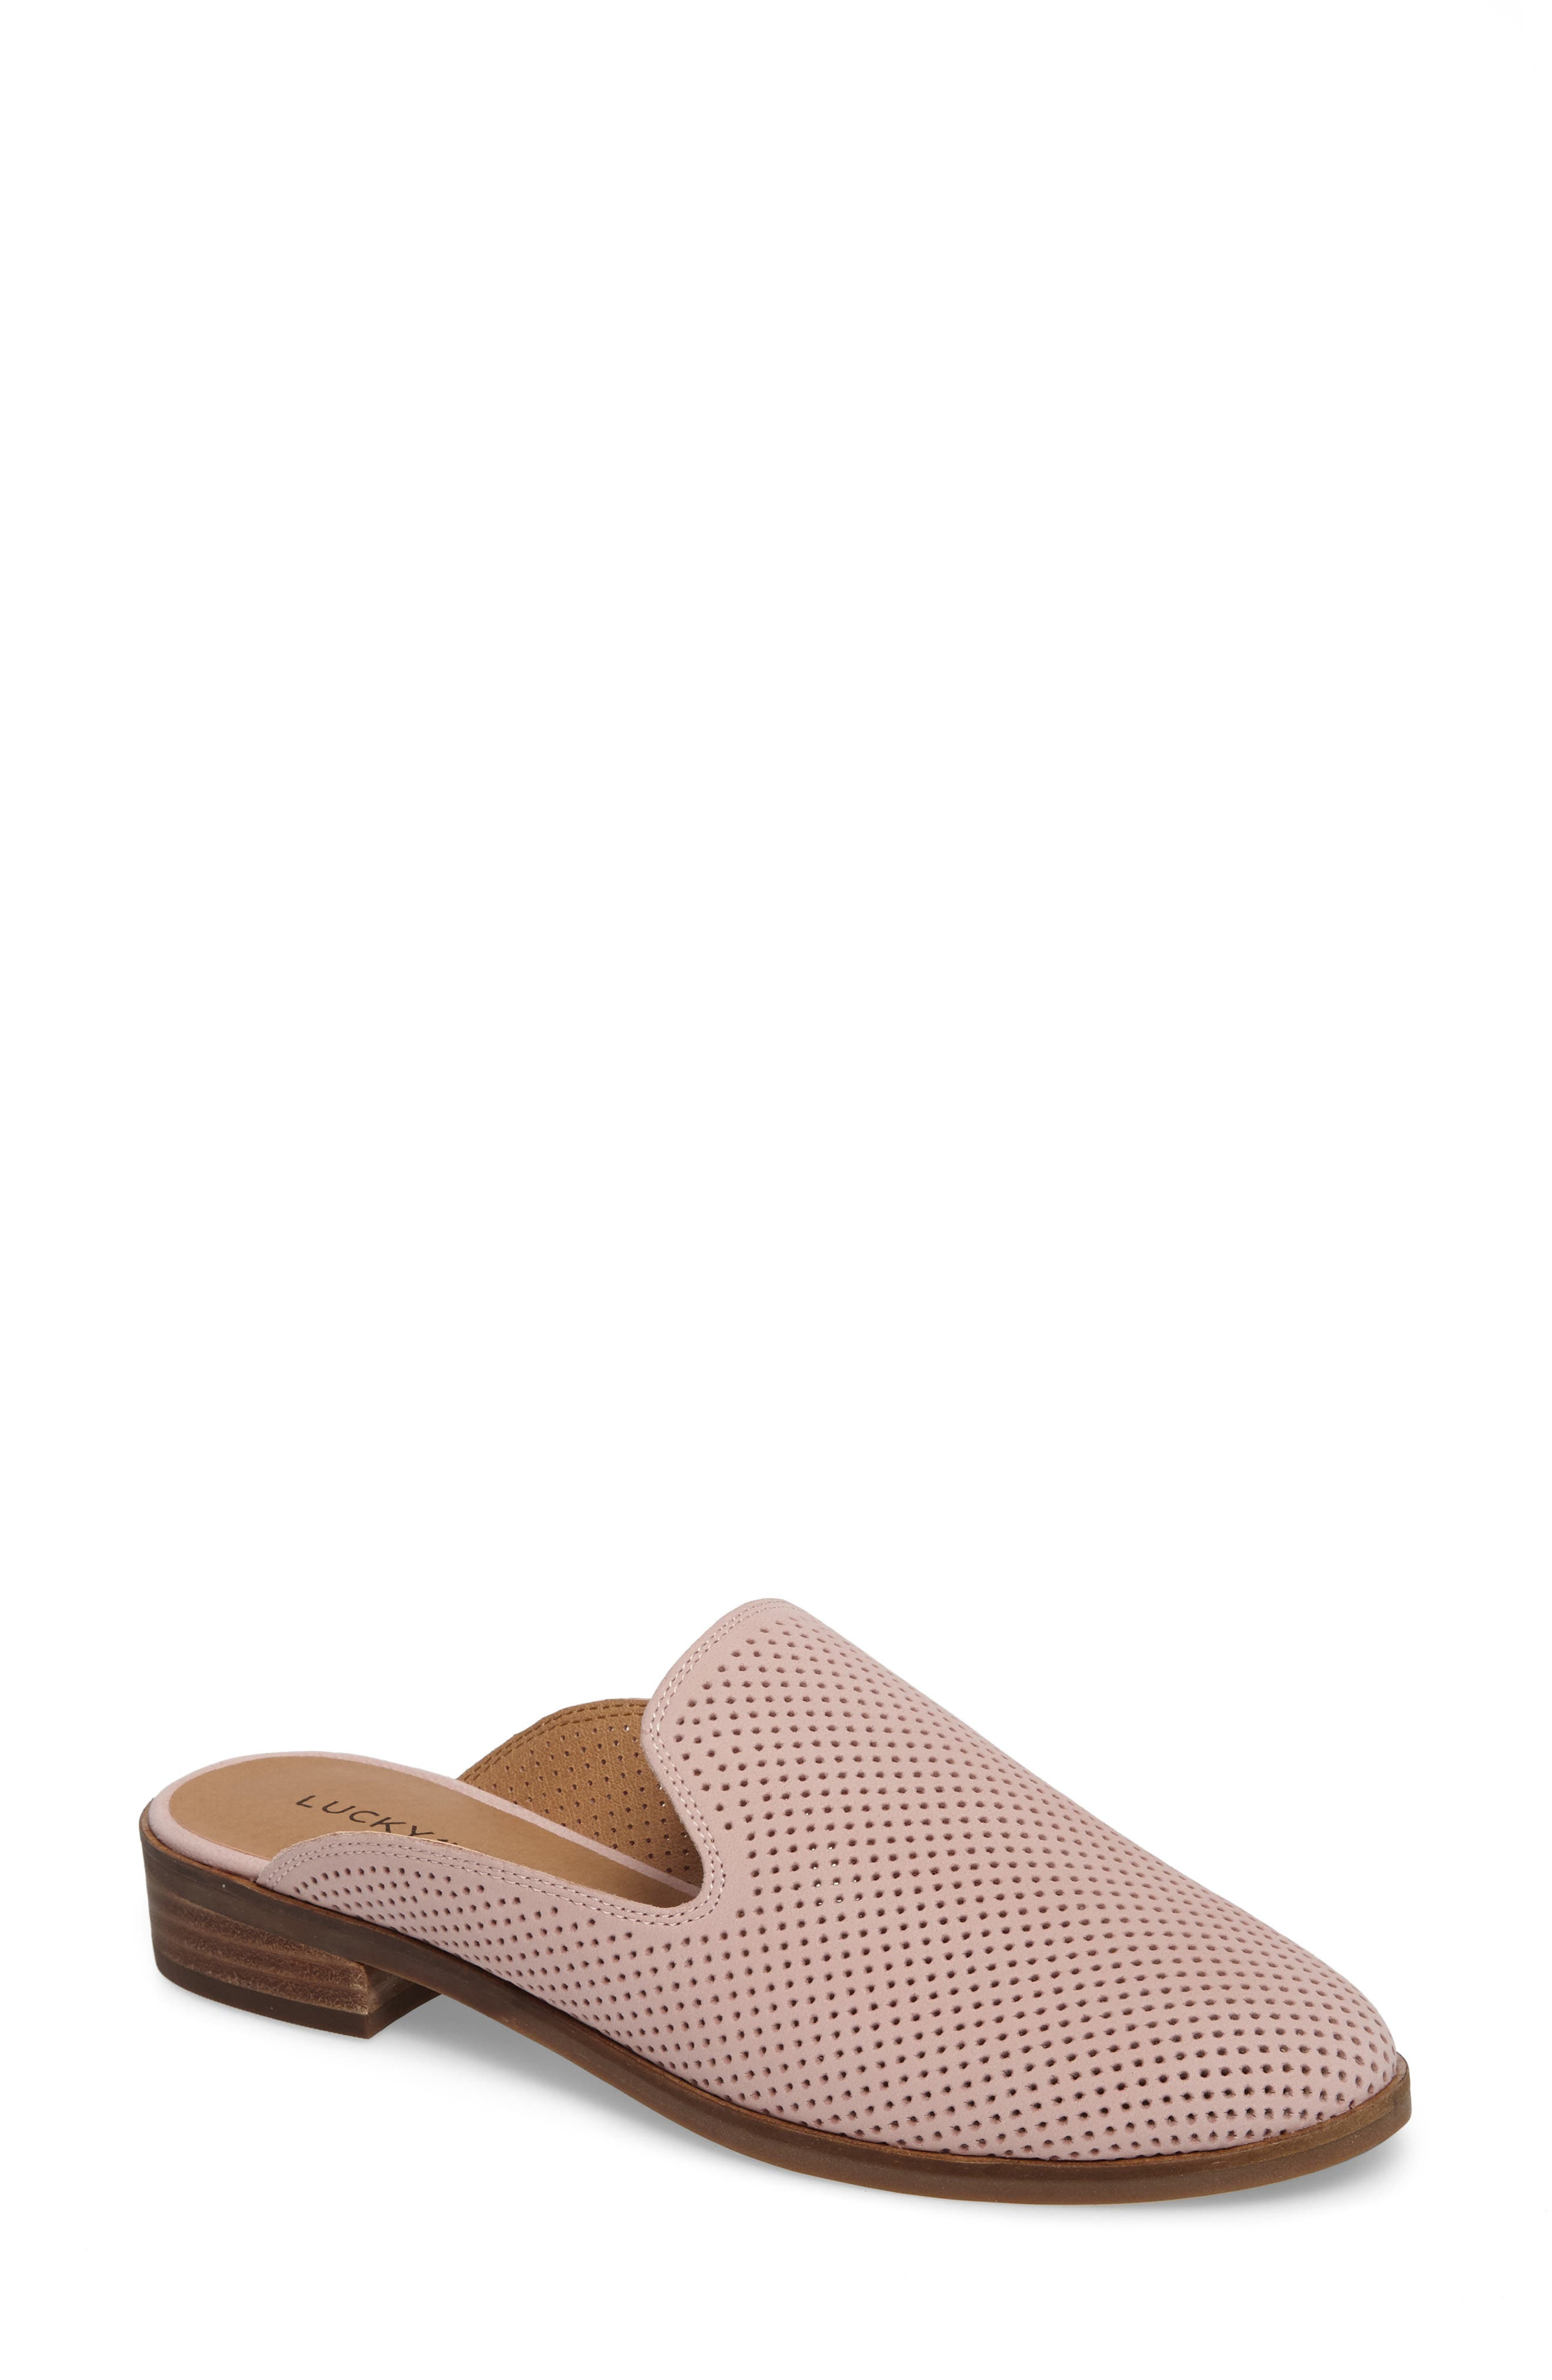 Alternate Image 1 Selected - Lucky Brand Cristley Mule (Women)